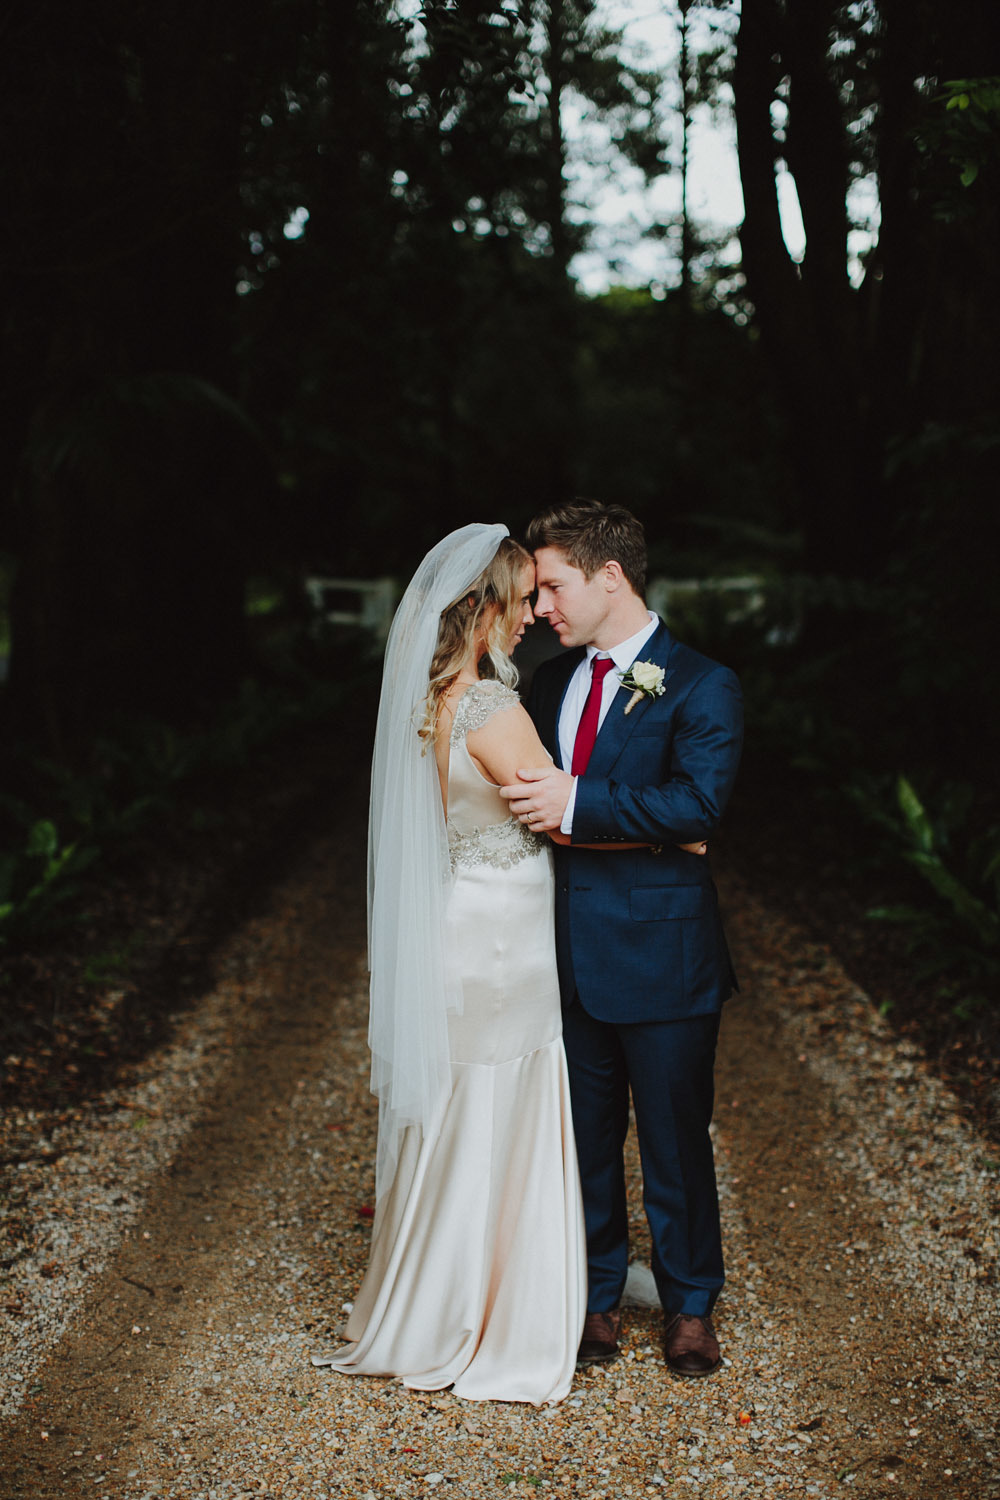 justin_aaron_byron_bay_eureka_wedding_photographer-70.jpg